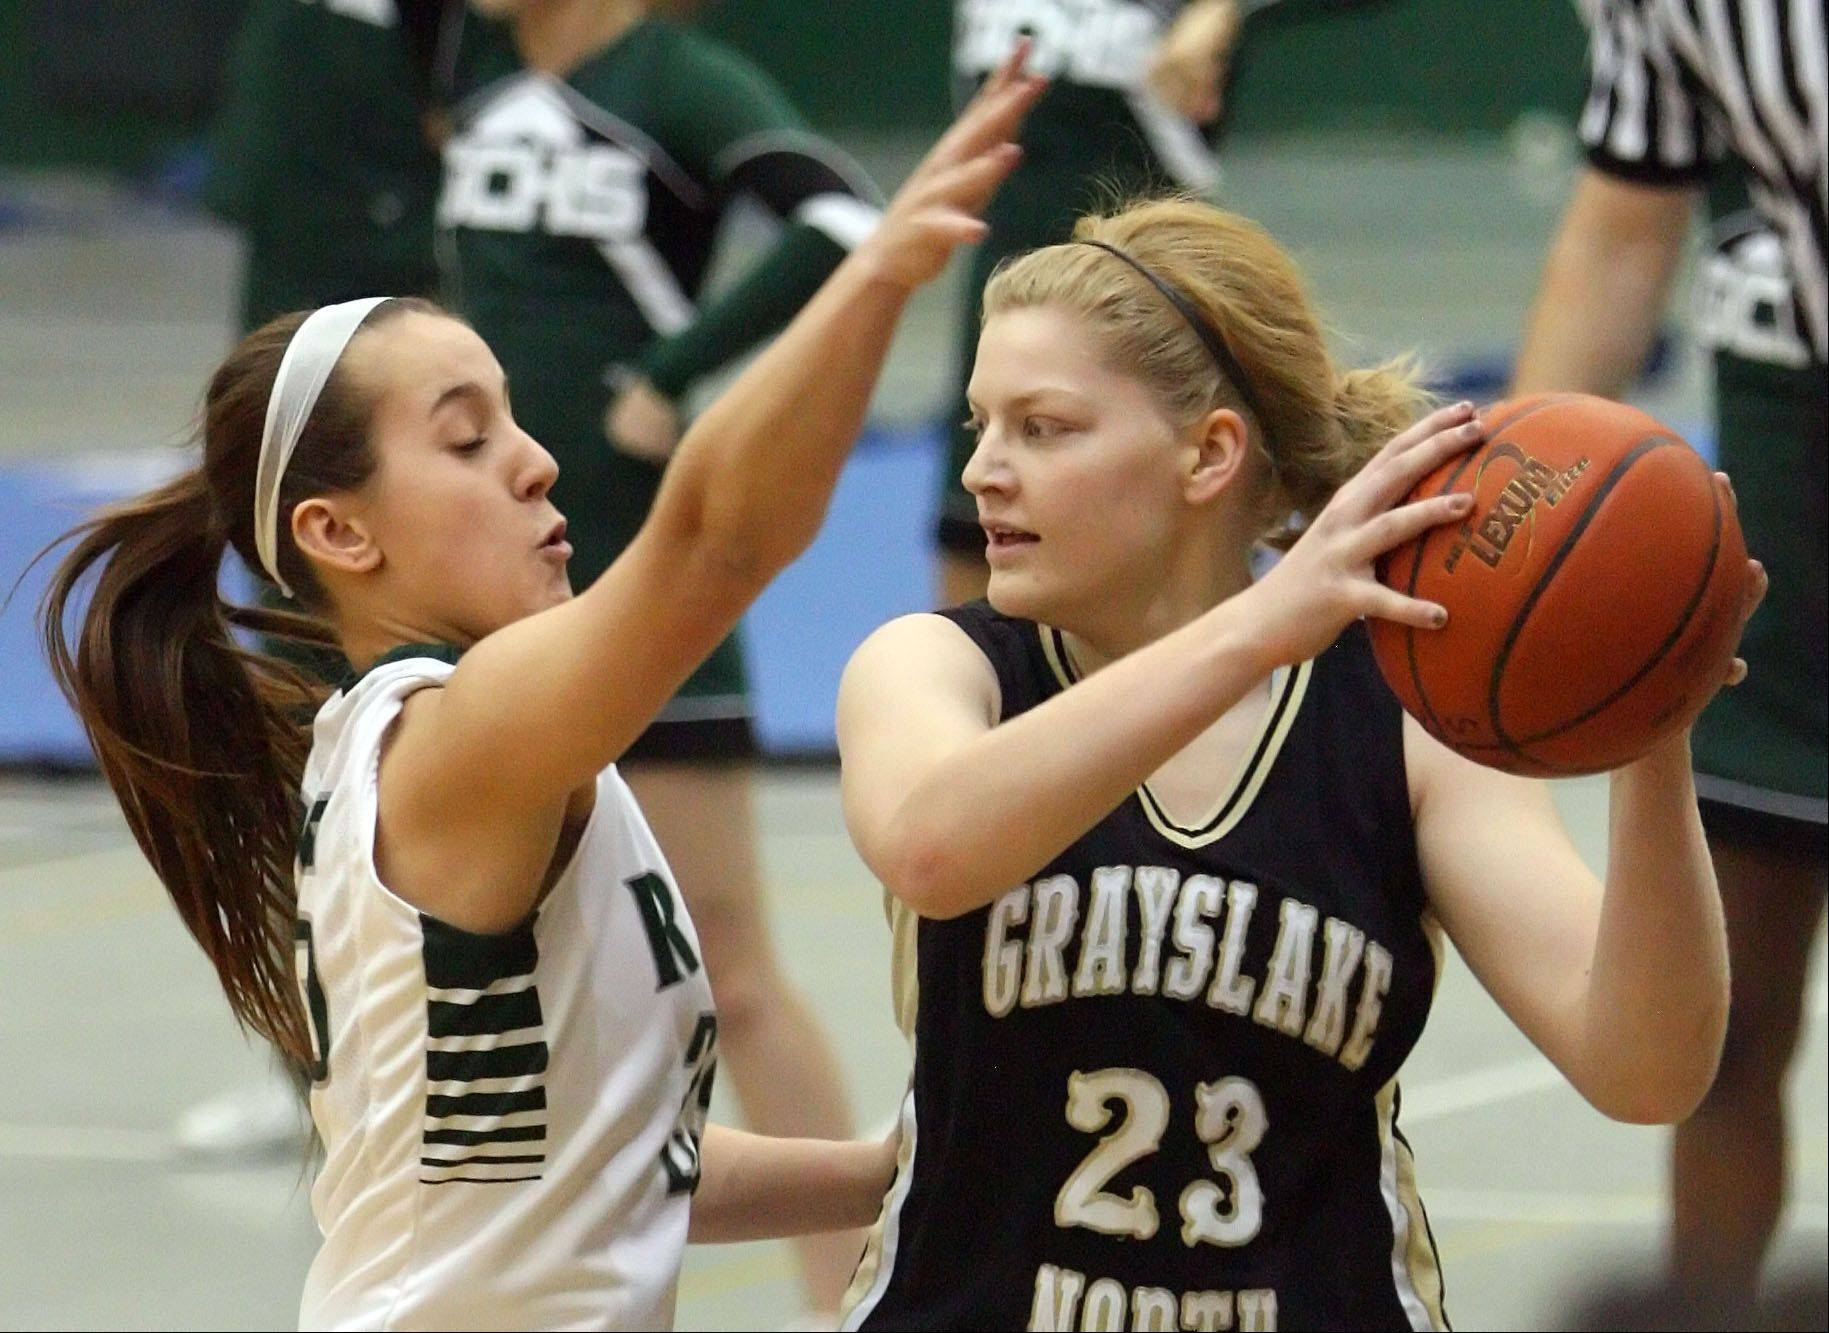 Grayslake Central�s Taylor Peterson, left, ddefends against Grayslake North�s Joanna Guhl.